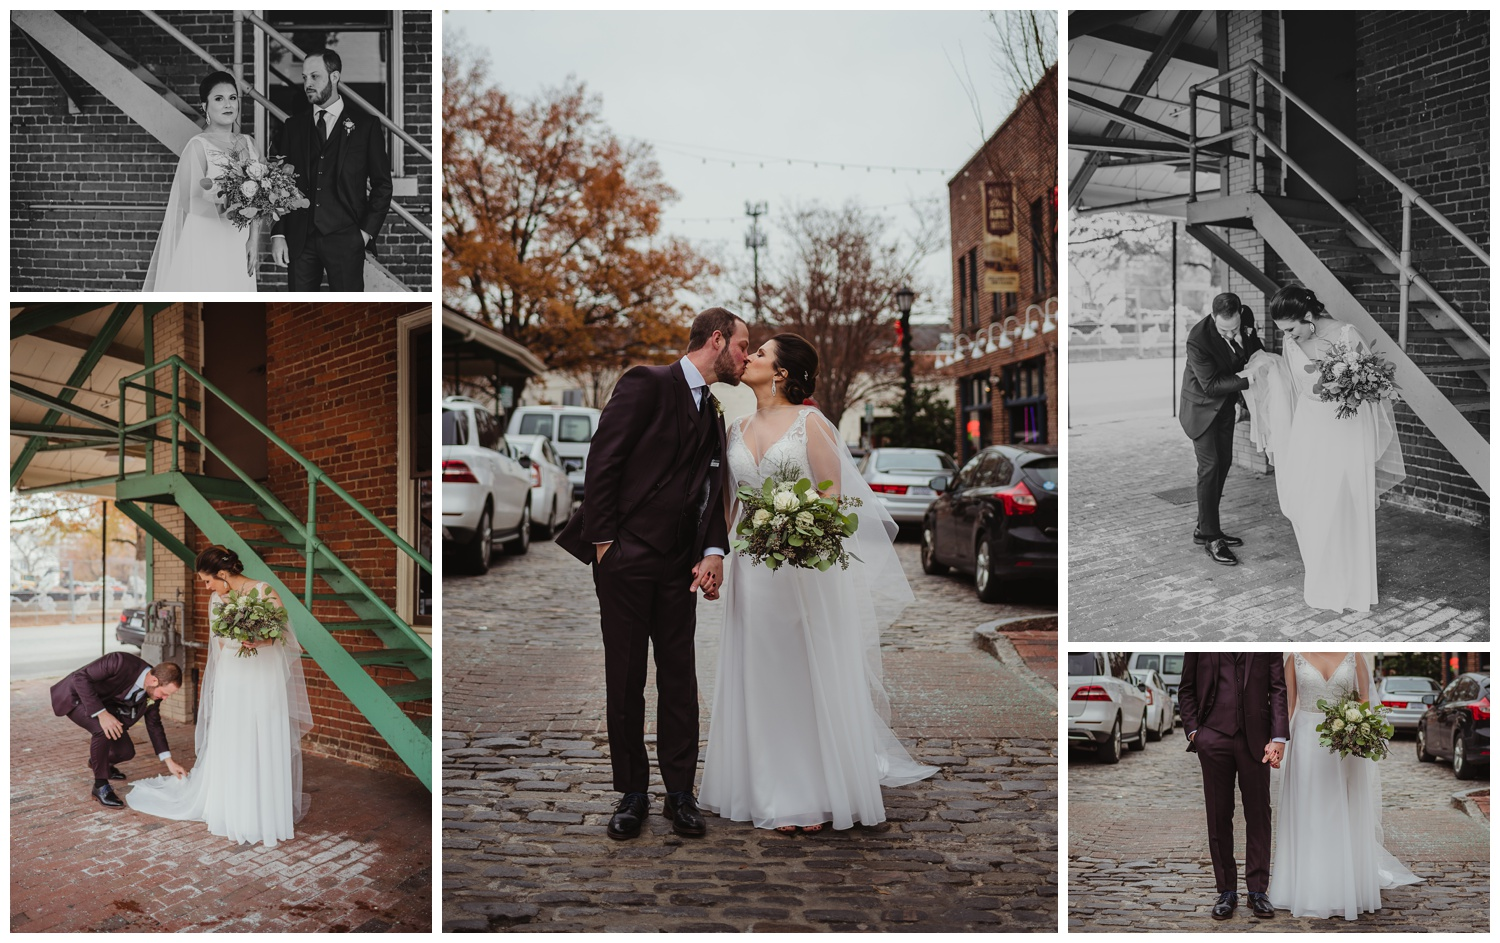 The bride and groom posed on the cobblestones outside before their wedding ceremony in downtown Raleigh, photos by Rose Trail Images.